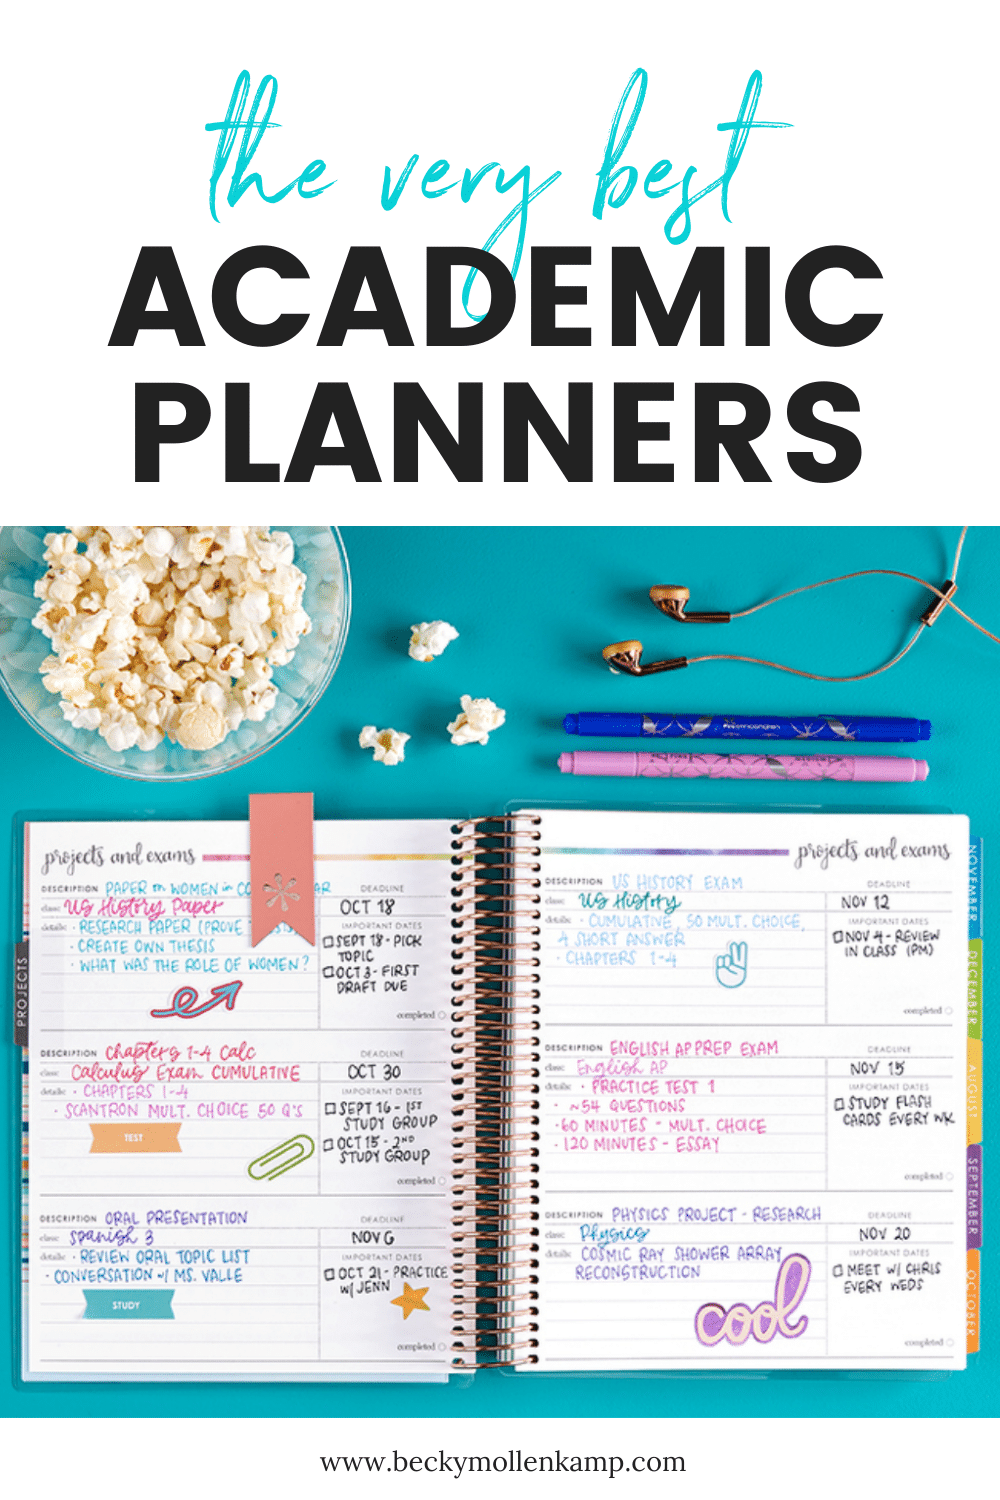 A great list of the best academic planners and mid-year calendars from BeckyMollenkamp.com